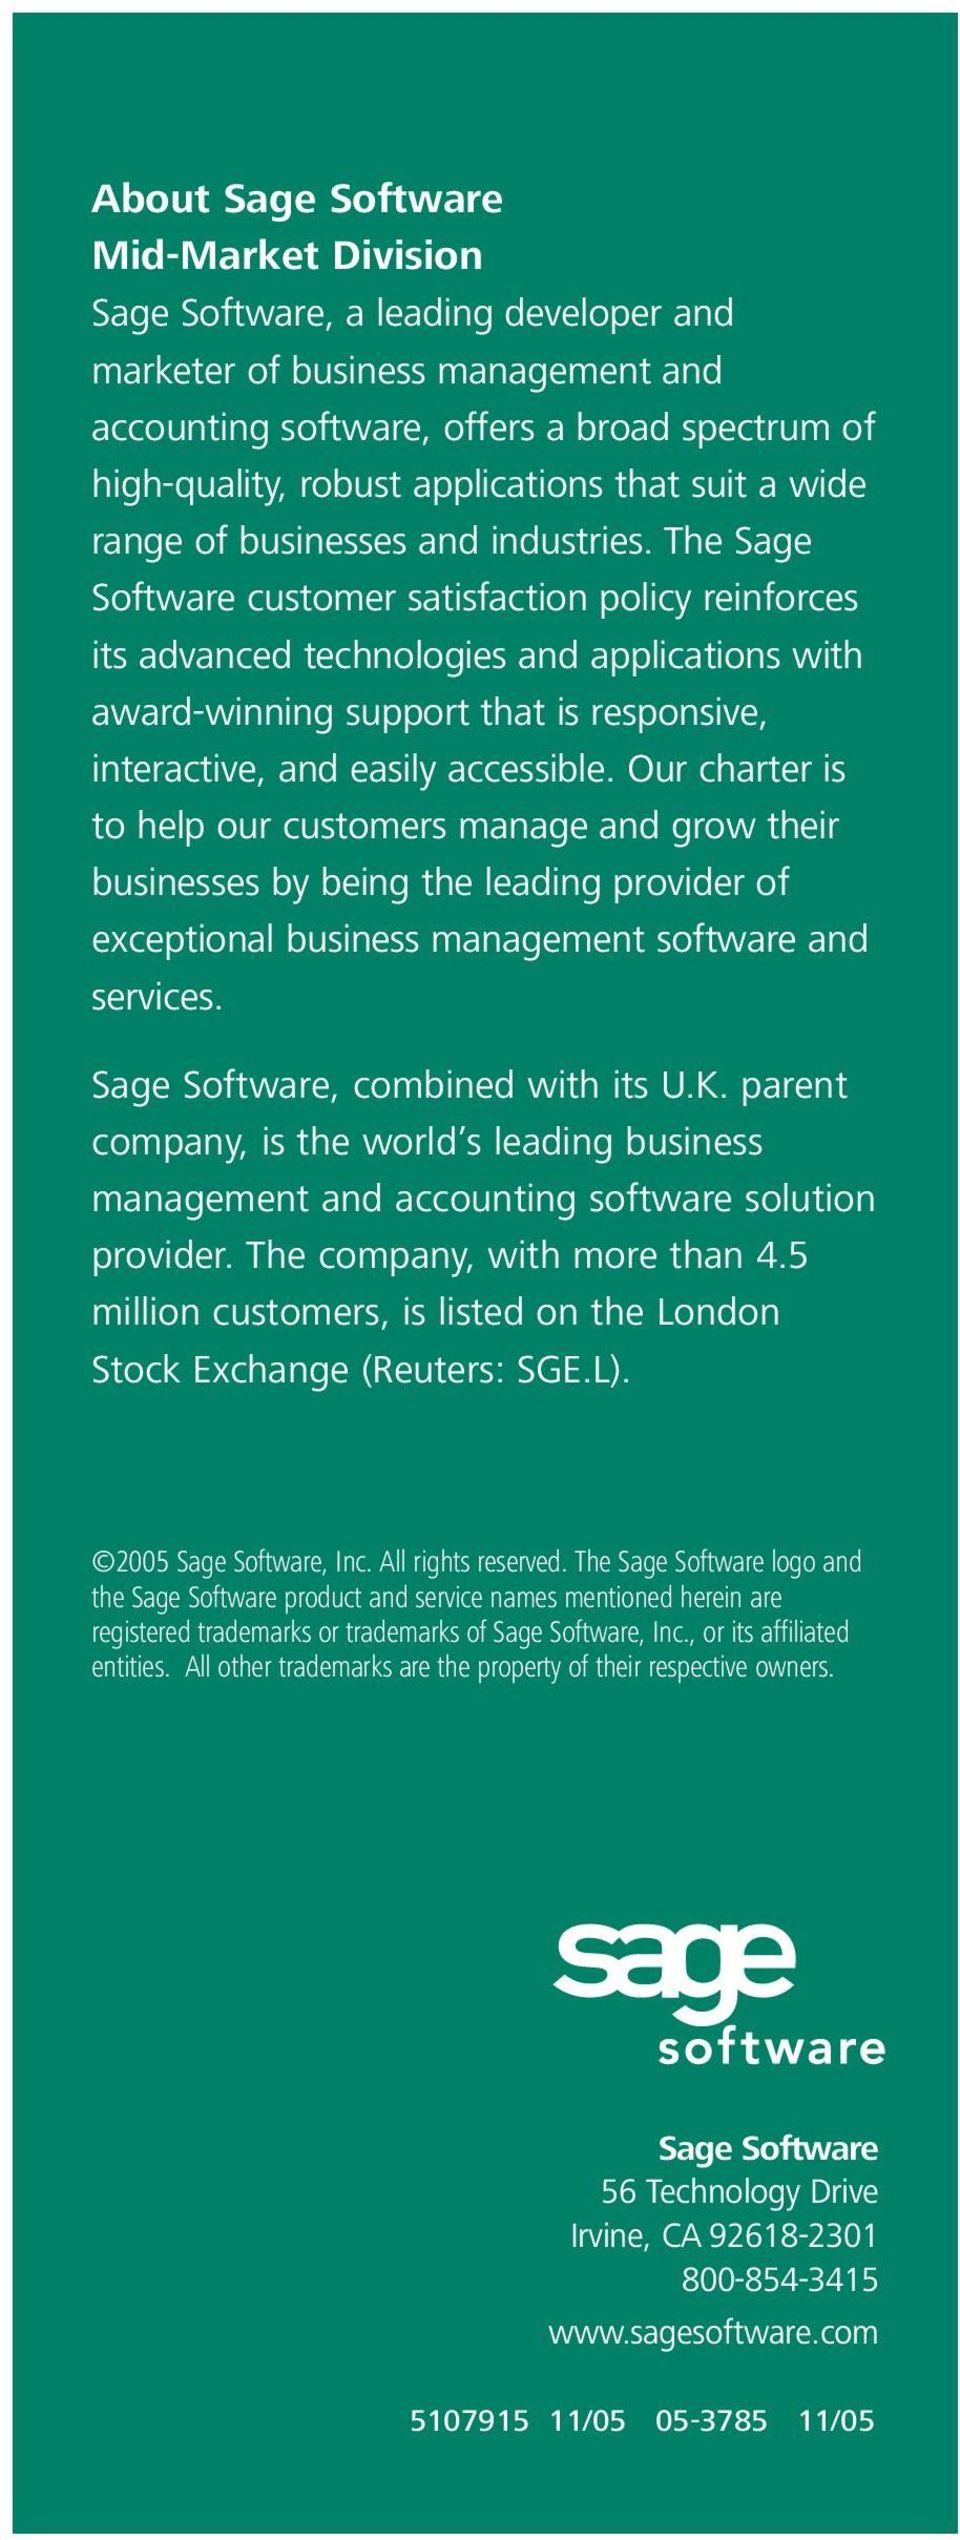 The Sage Software customer satisfaction policy reinforces its advanced technologies and applications with award-winning support that is responsive, interactive, and easily accessible.